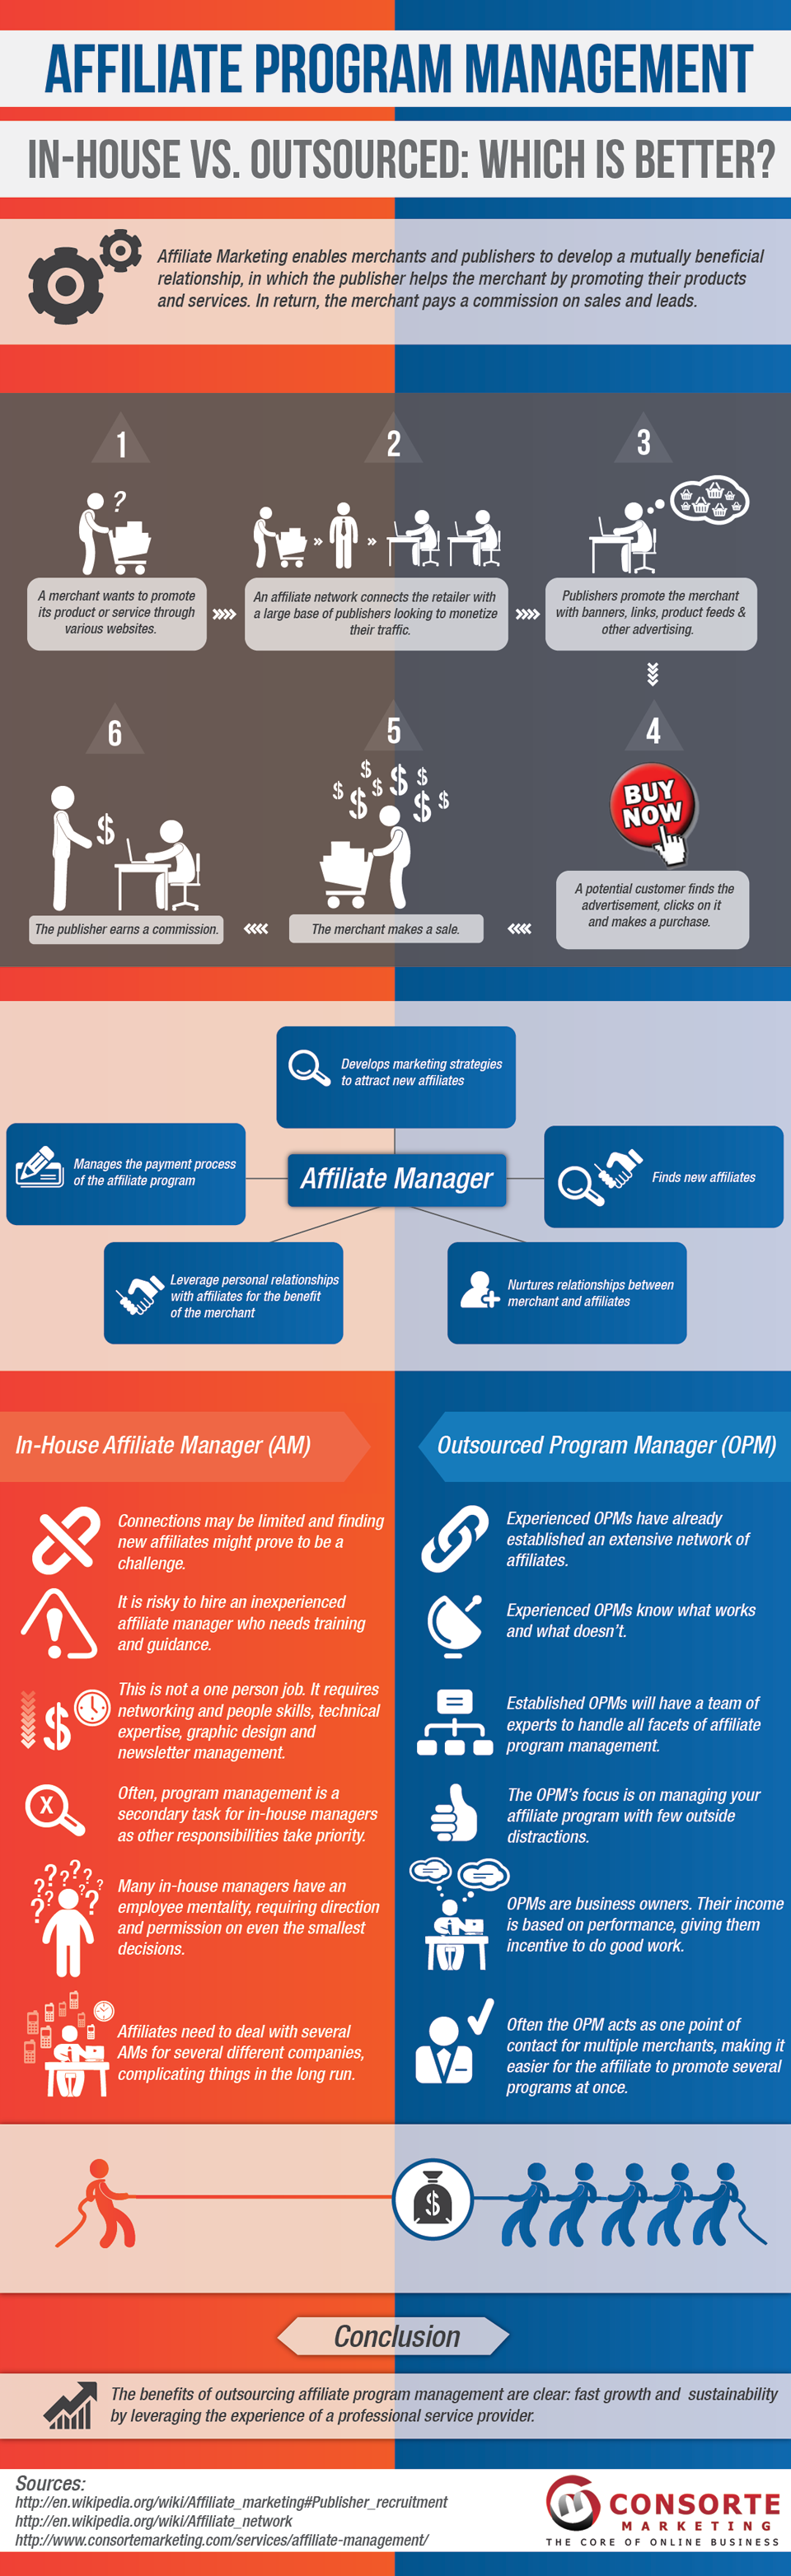 Affiliate Programs: Comparing In-House vs. Outsourced Management